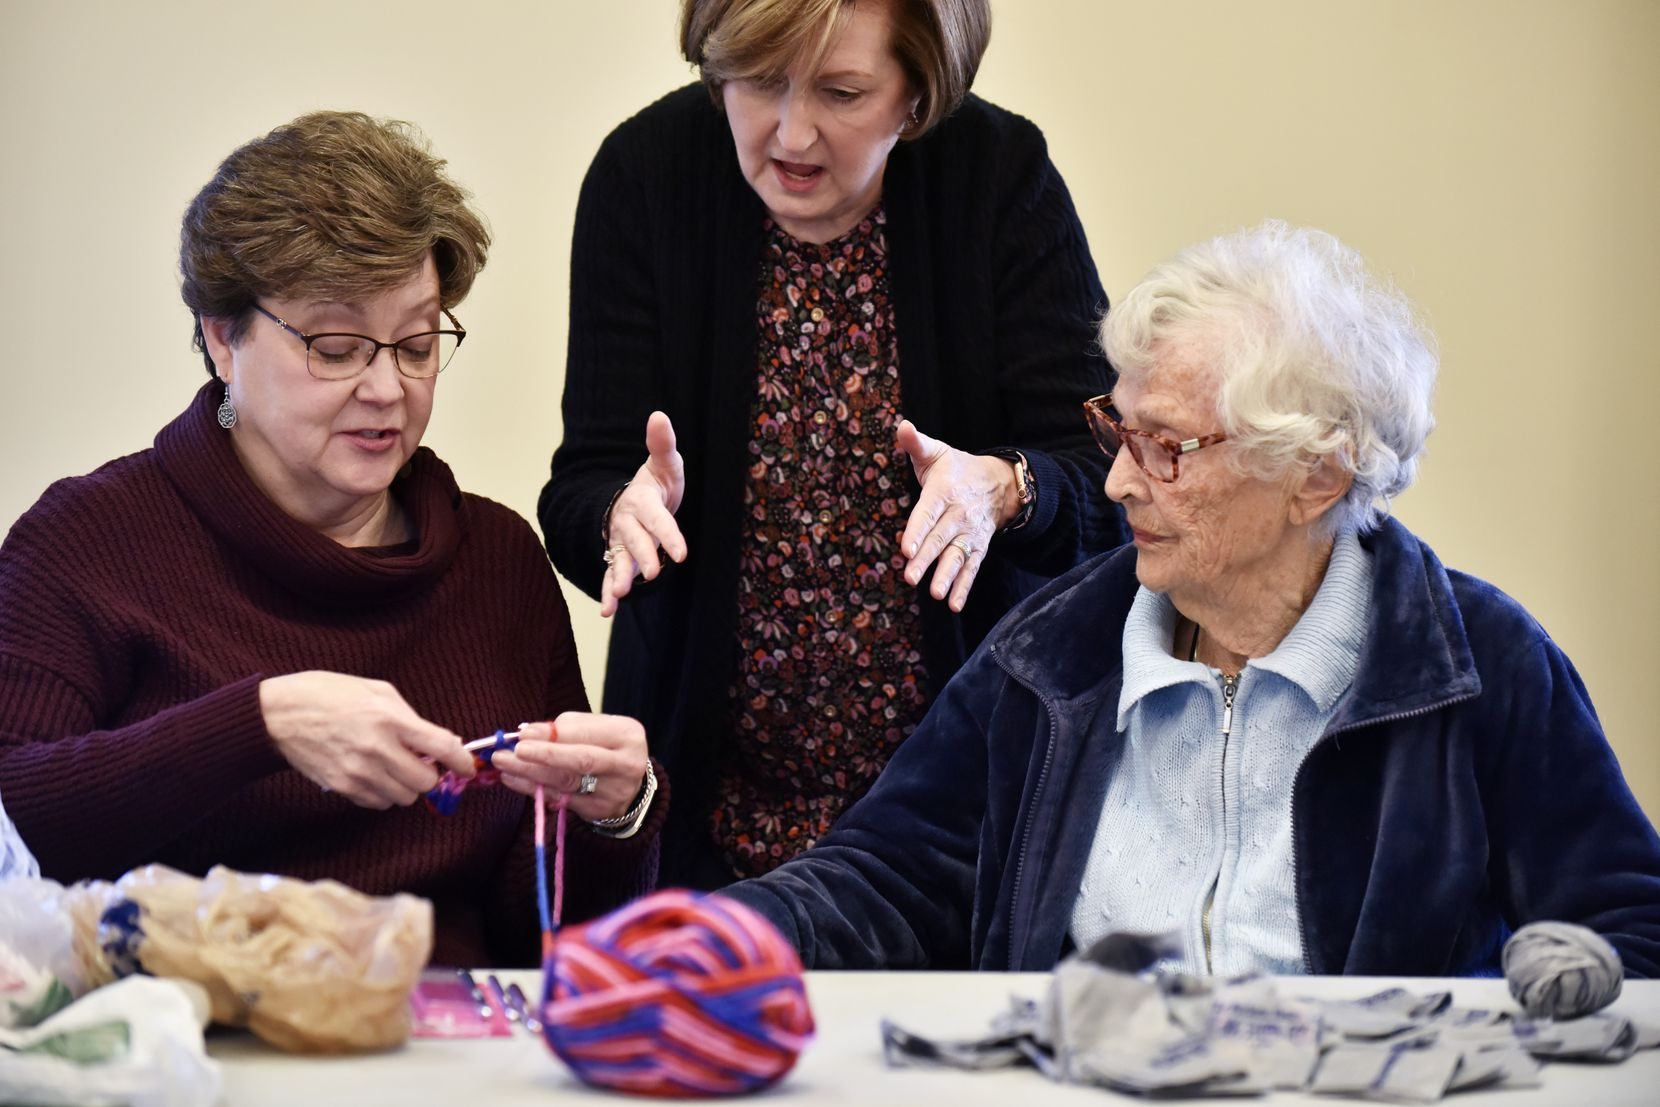 Kay McCall (from left), 62, learns to crochet from Kristi Jenkins, 63, and resident Emma Sattler, 92, at the CC Young Senior Living retirement community in Dallas.